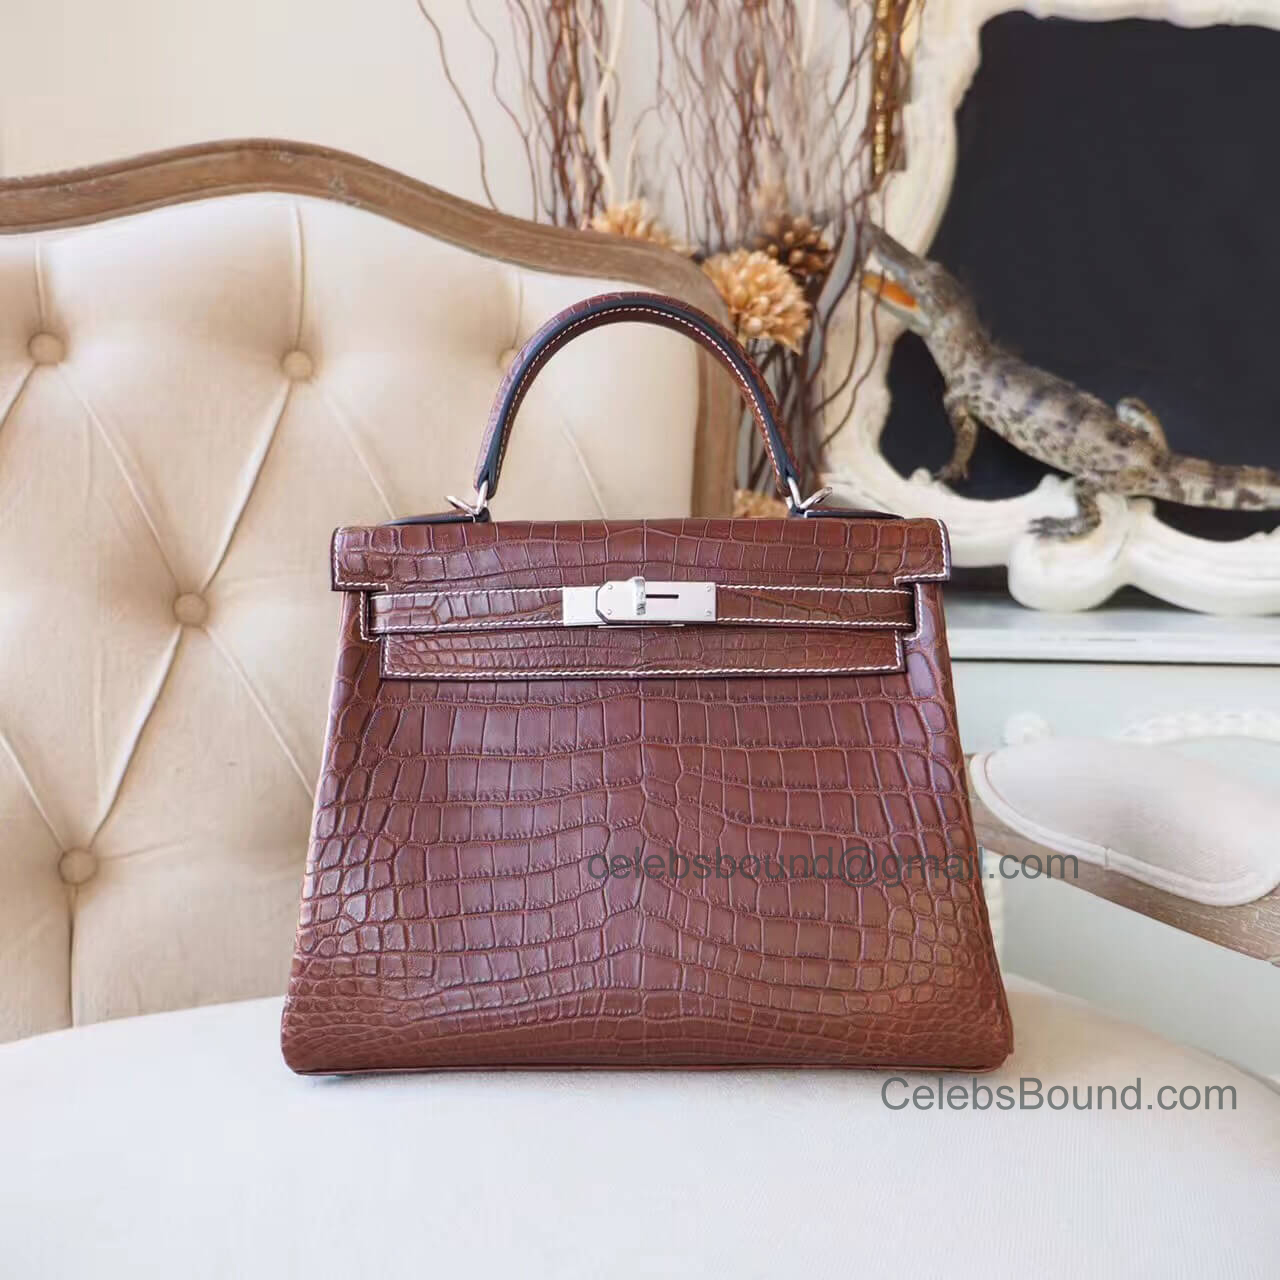 Replica Hermes Kelly 28 Bag in ck31 Miel Matte Nile Croc PHW